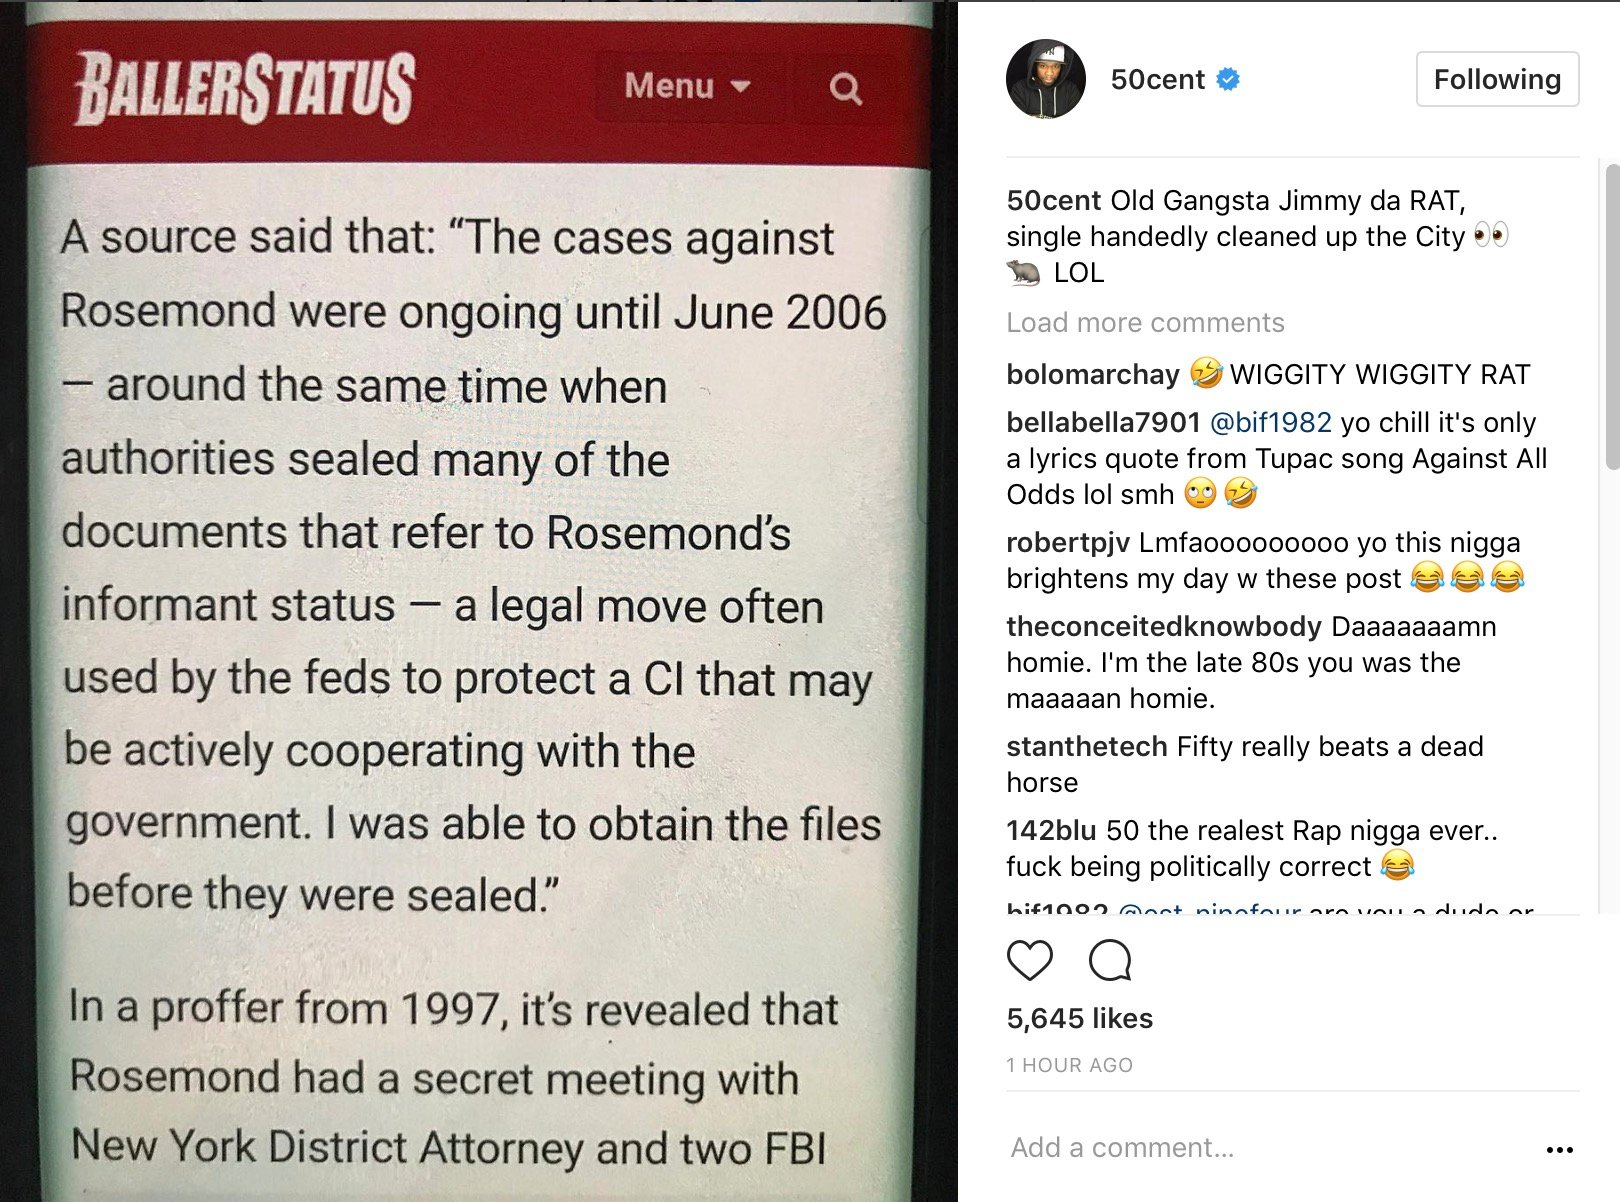 """50 Cent Once Again Flames Jimmy Henchman W/ Rat Accusations: """"No-Snitch Advocate Exposed As Informant"""" –"""